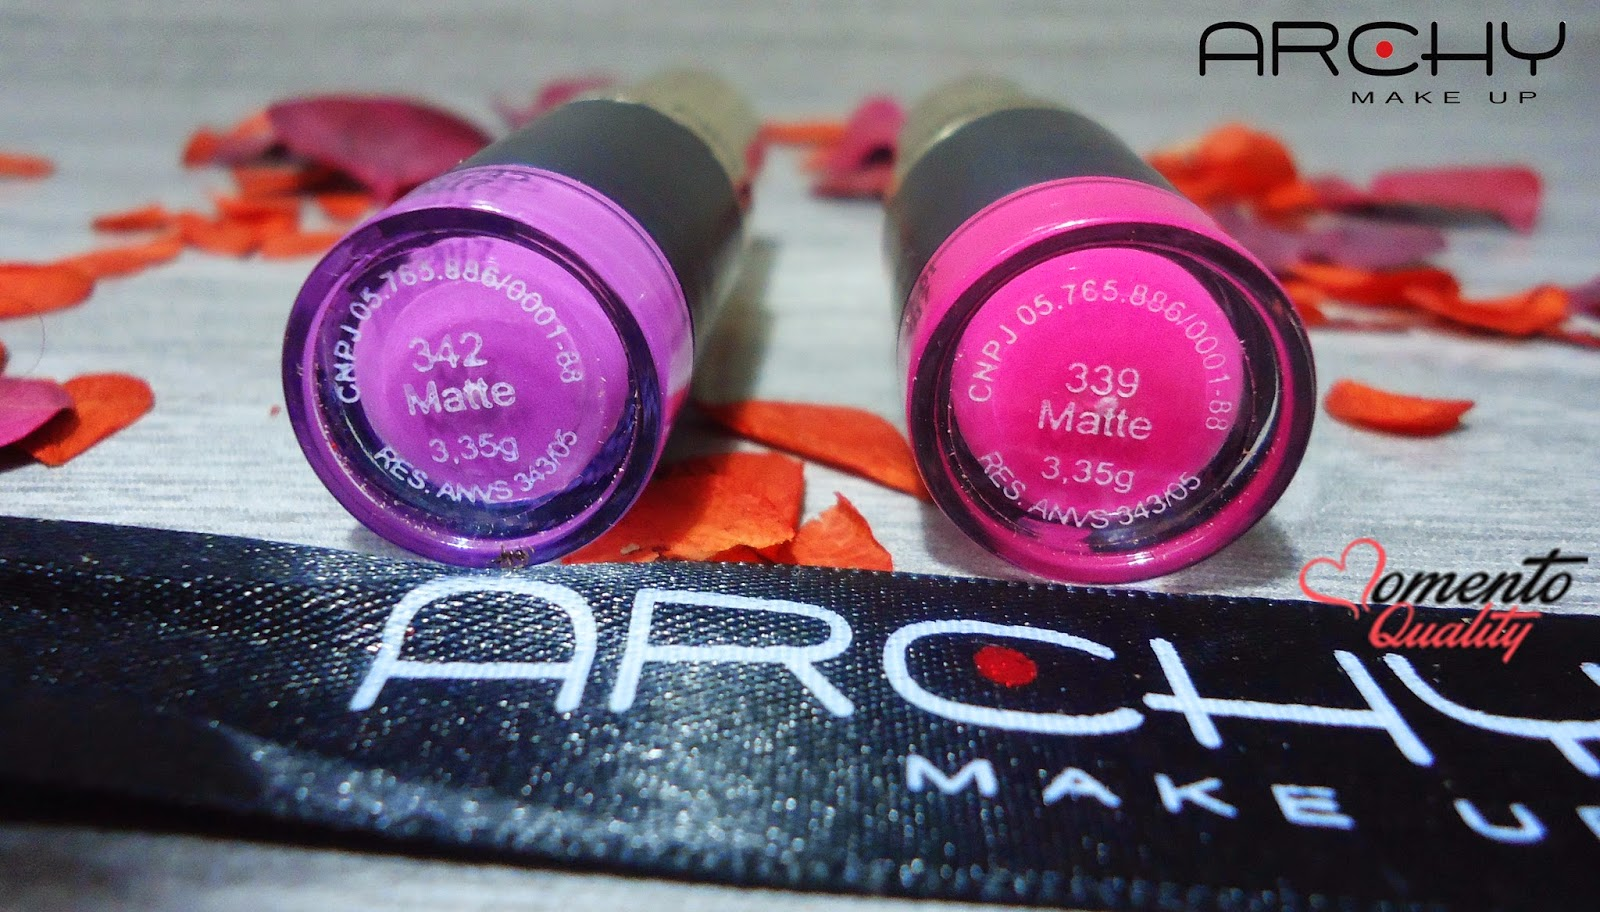 Batom Archy Make Up 342 e 339 Momento Quality